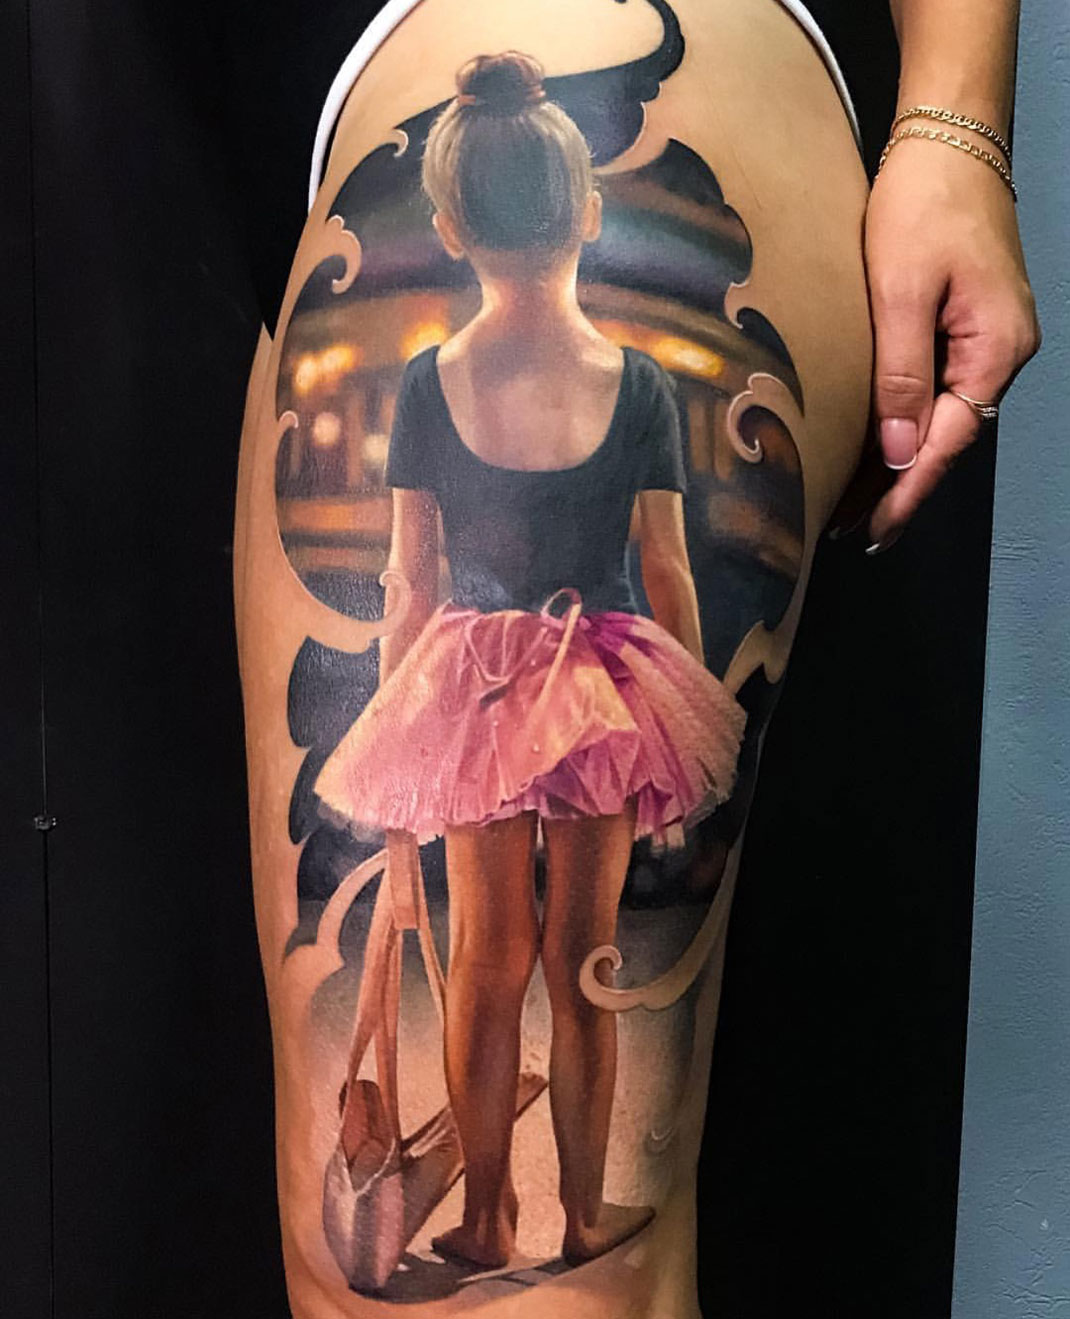 Little Ballerina girl, thigh tattoo